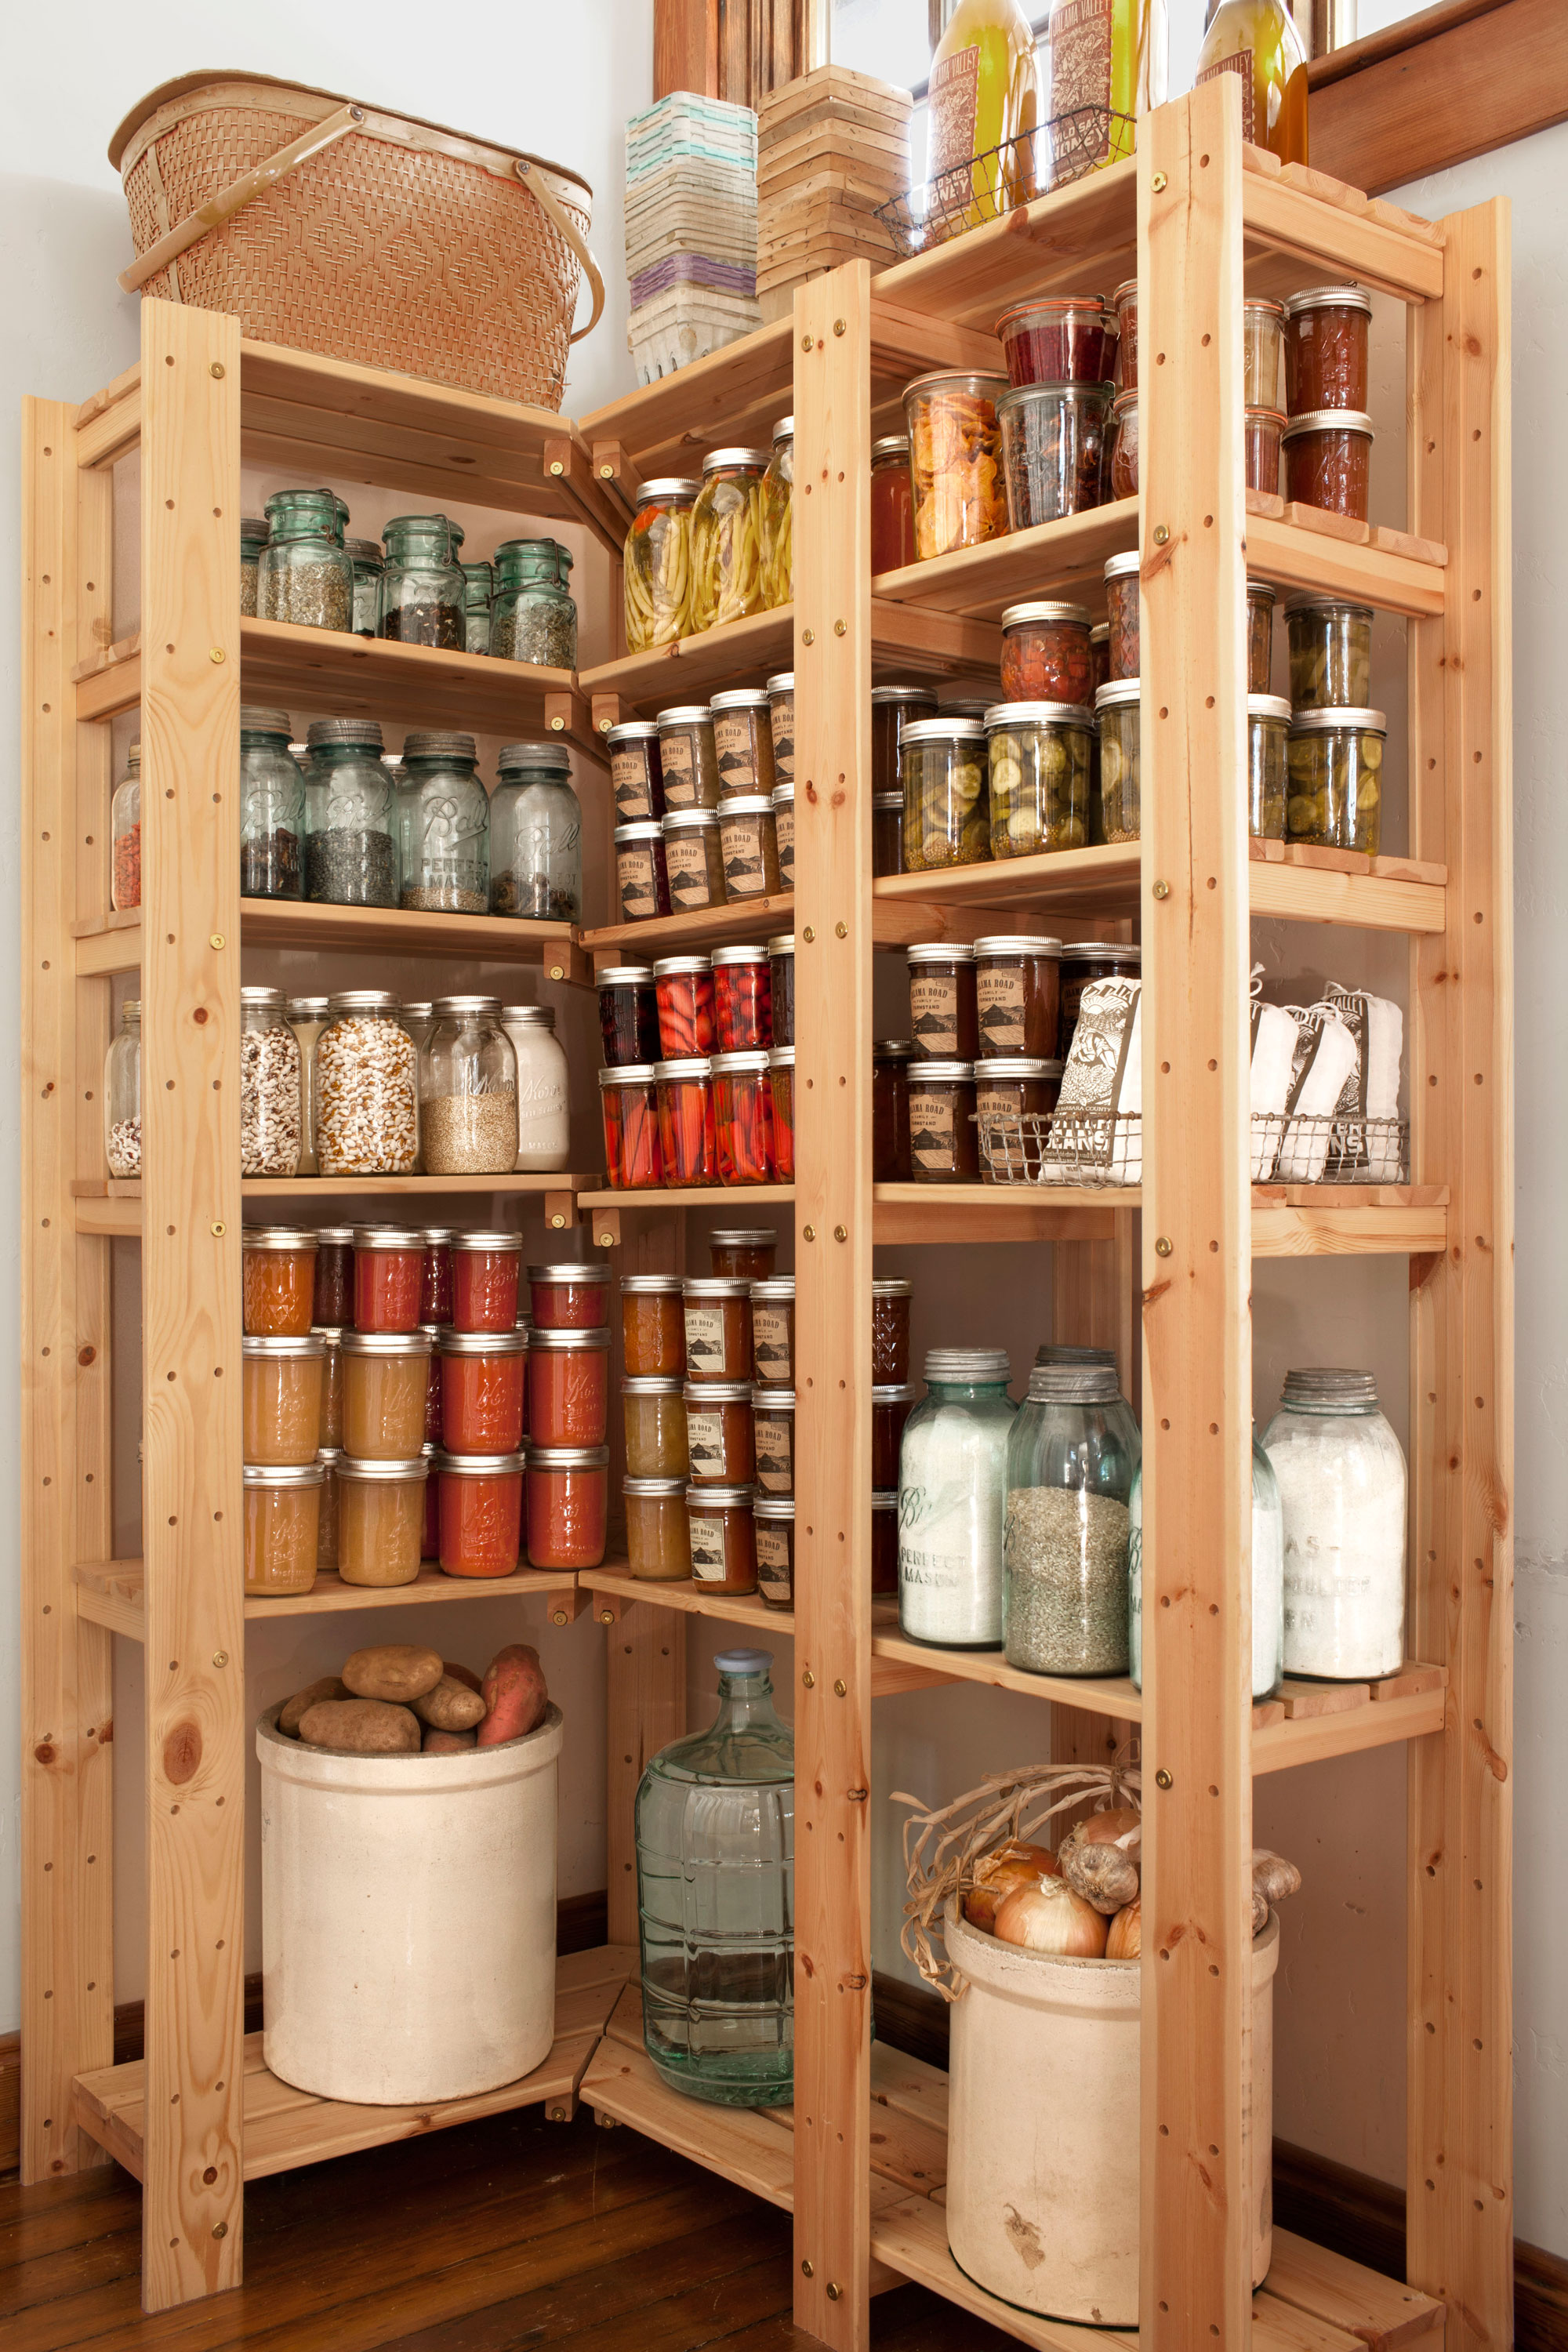 Pantry For Kitchens 14 Smart Ideas For Kitchen Pantry Organization Pantry Storage Ideas